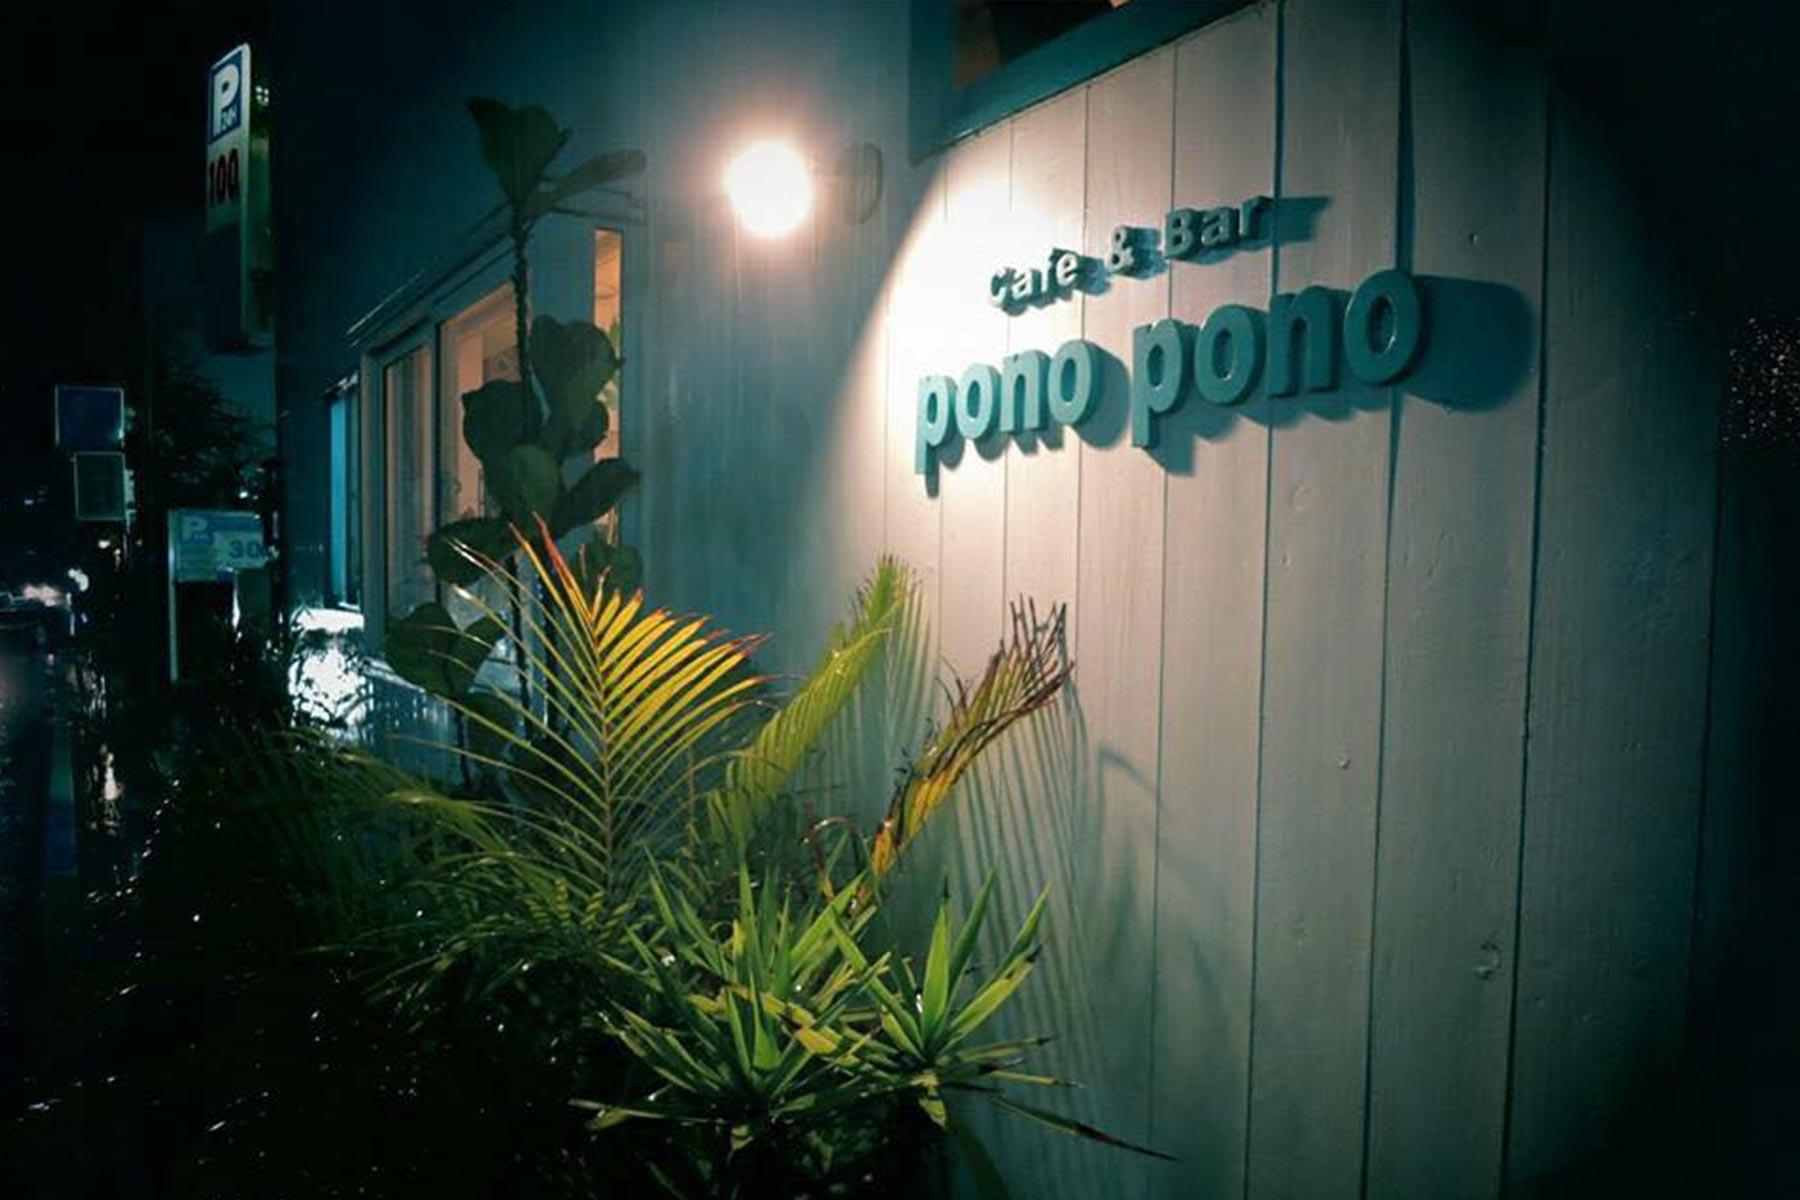 Cafe & Bar pono pono